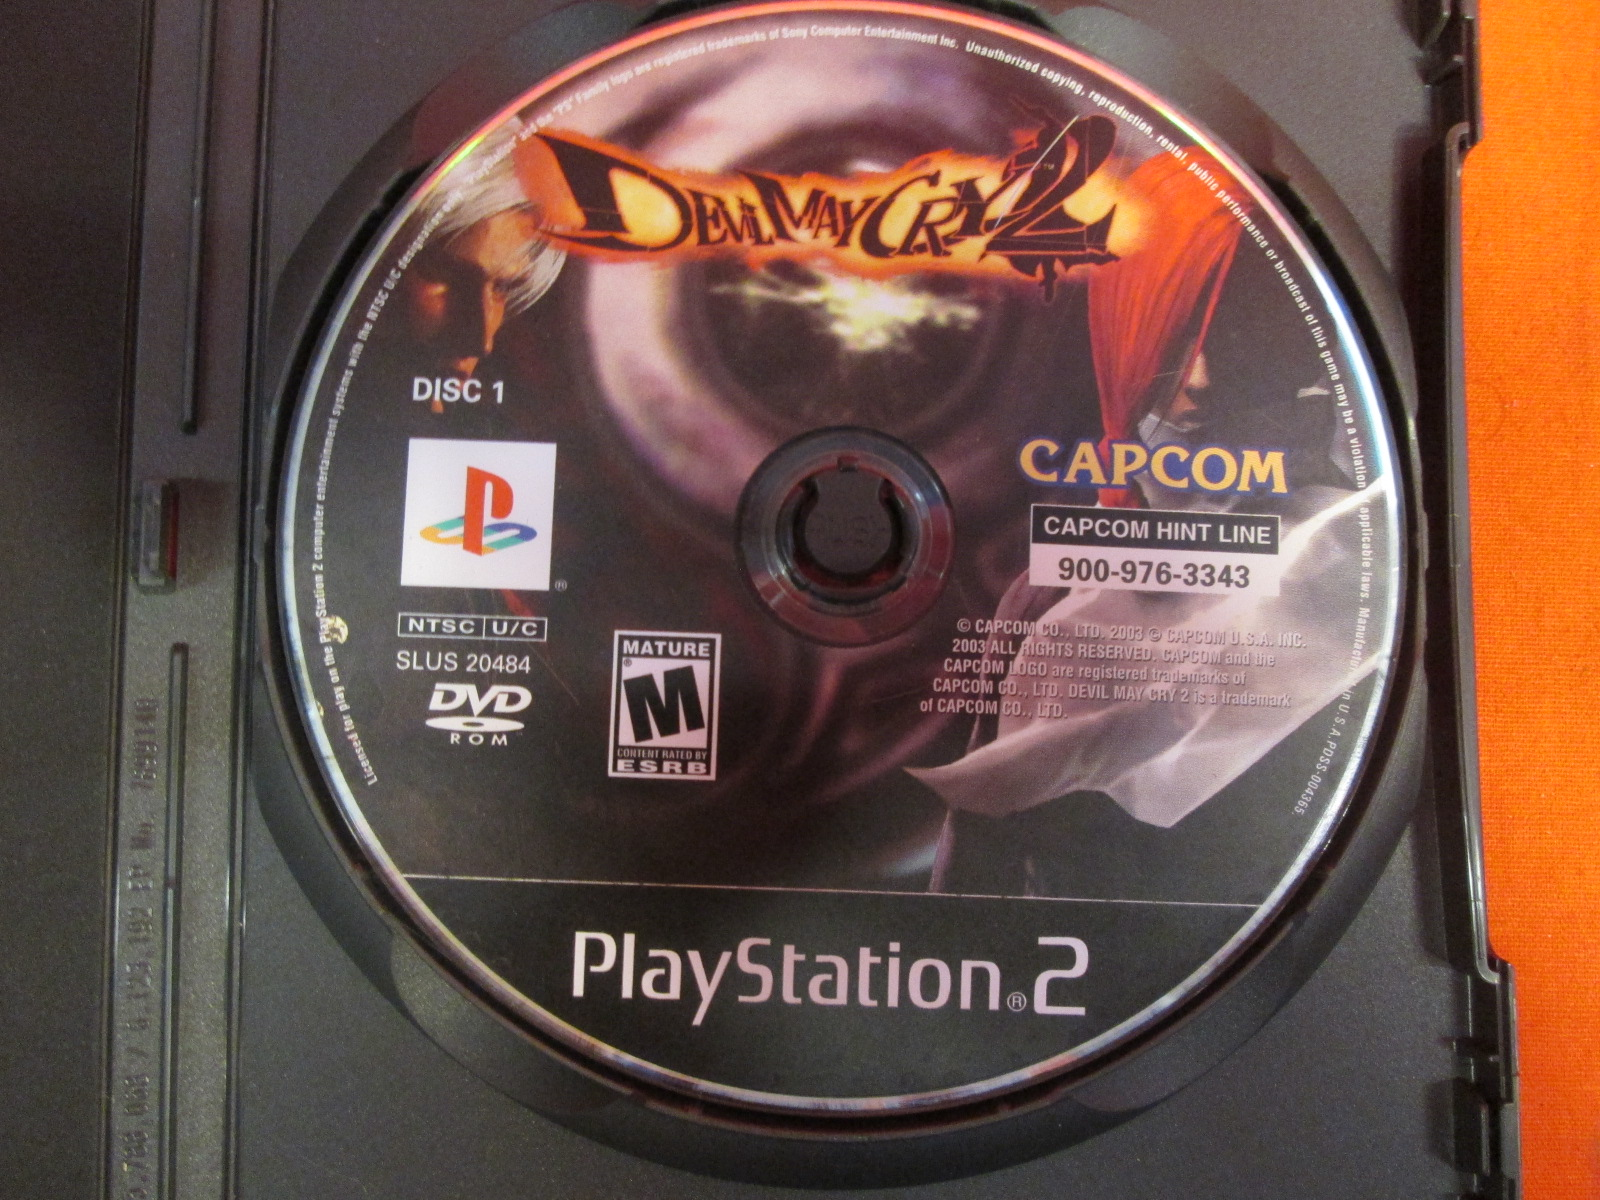 Replacement Disc 1 For Devil May Cry 2 For PlayStation 2